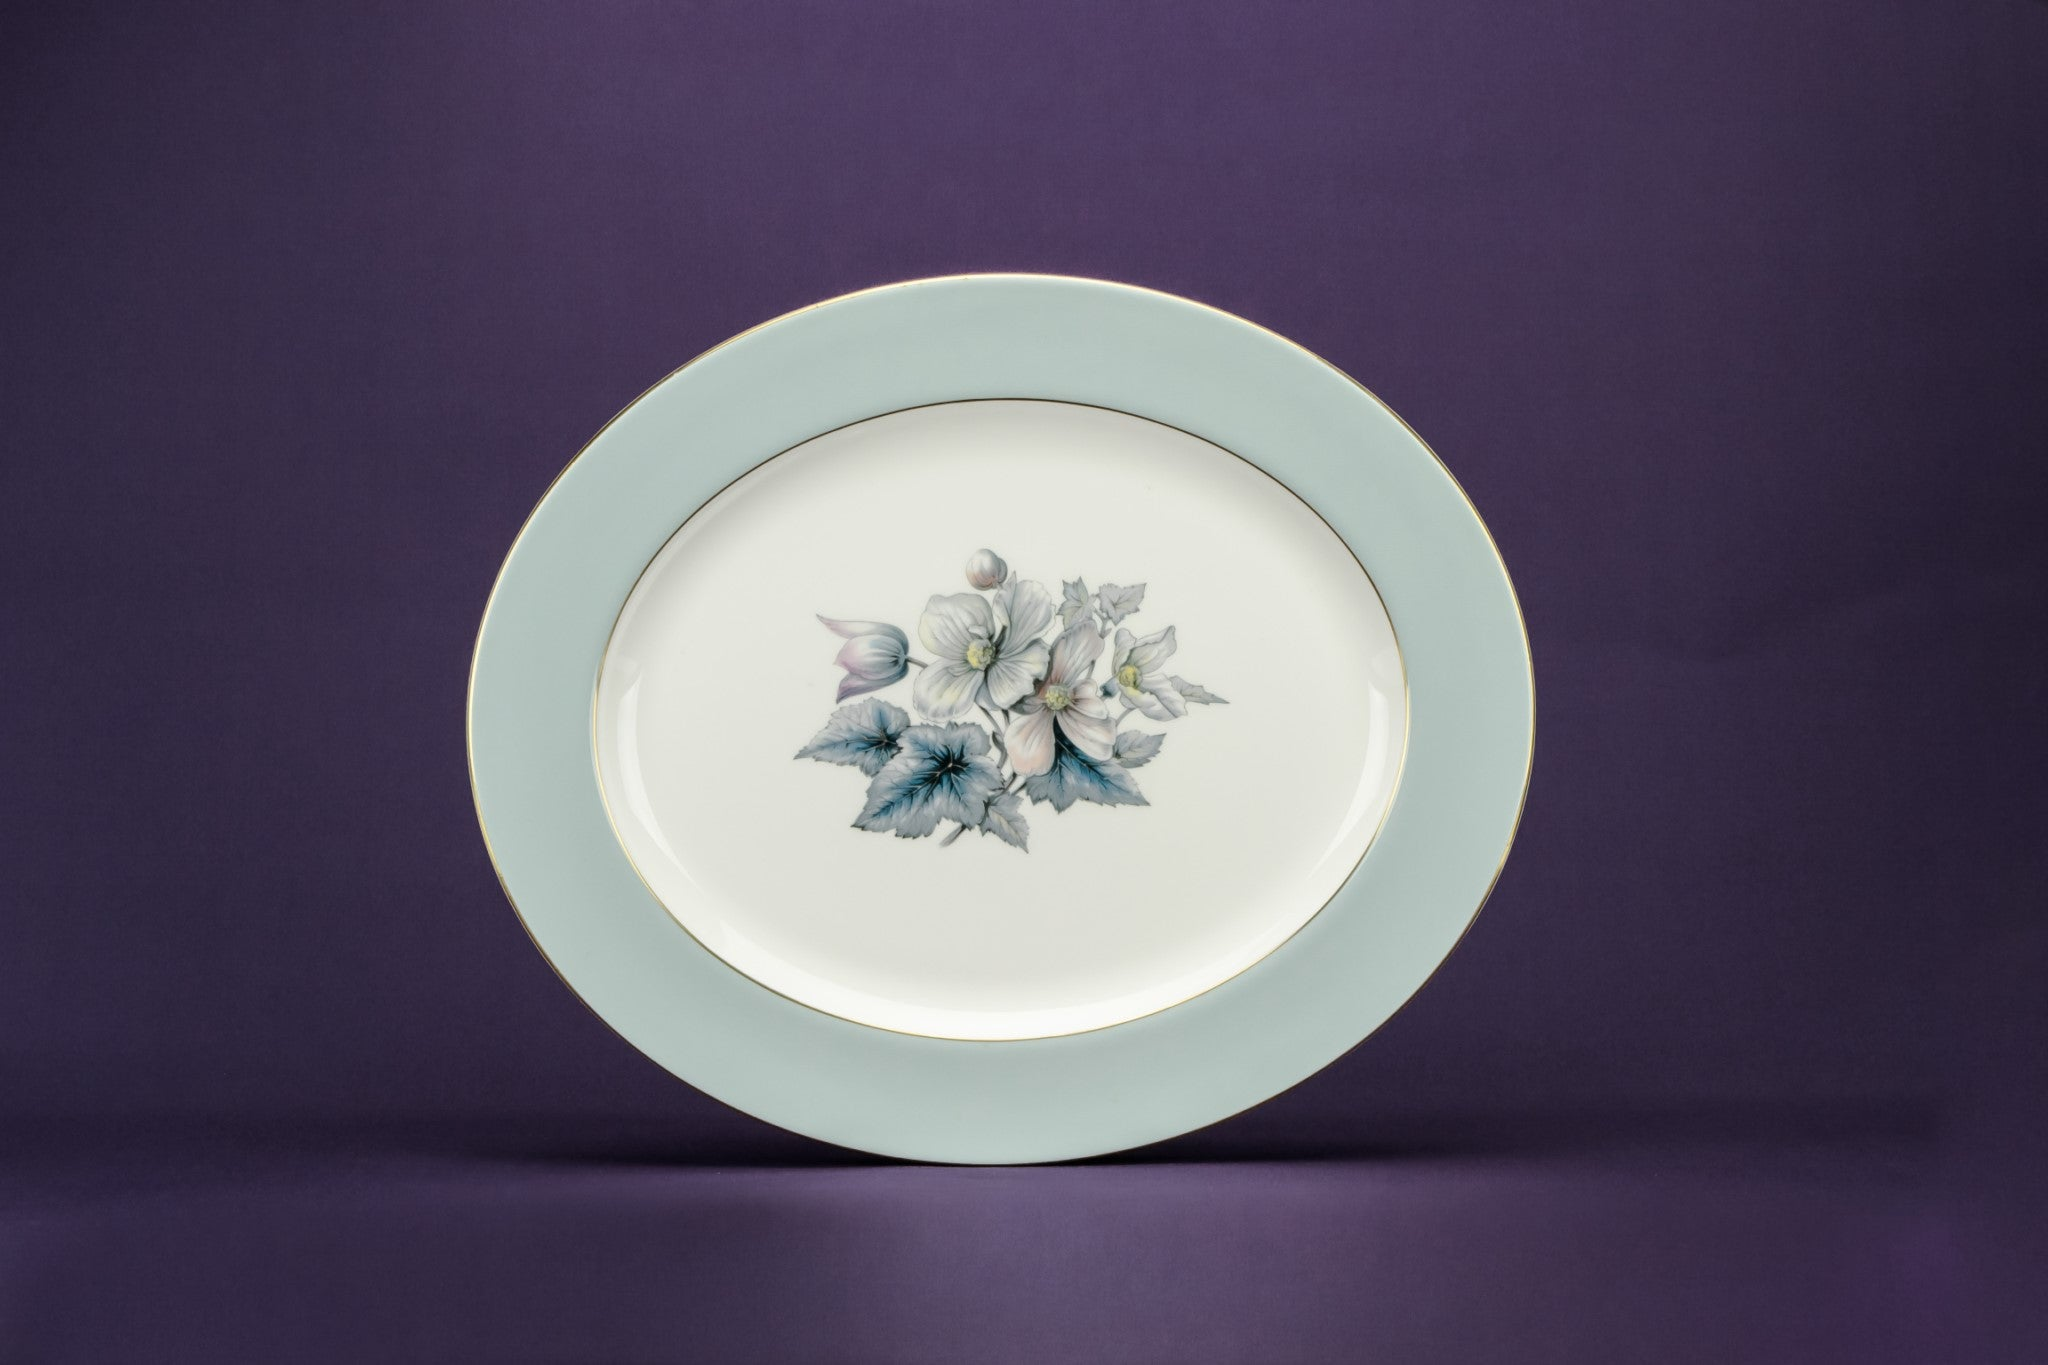 Large blue serving platter